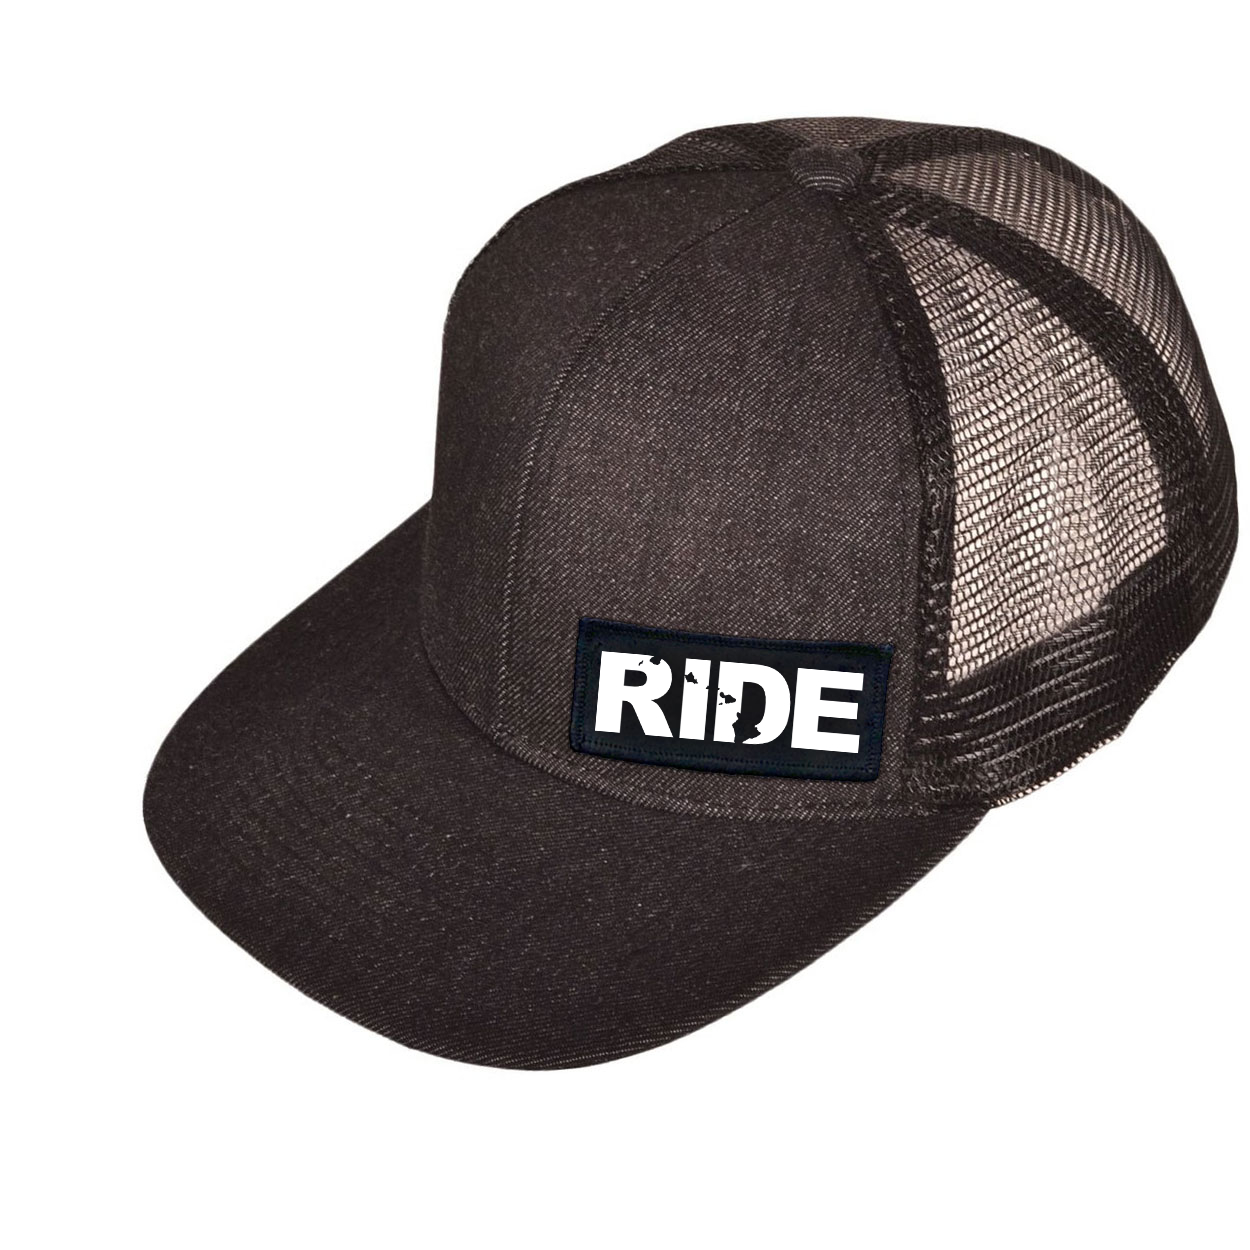 Ride Hawaii Night Out Woven Patch Snapback Flat Brim Hat Black Denim (White Logo)